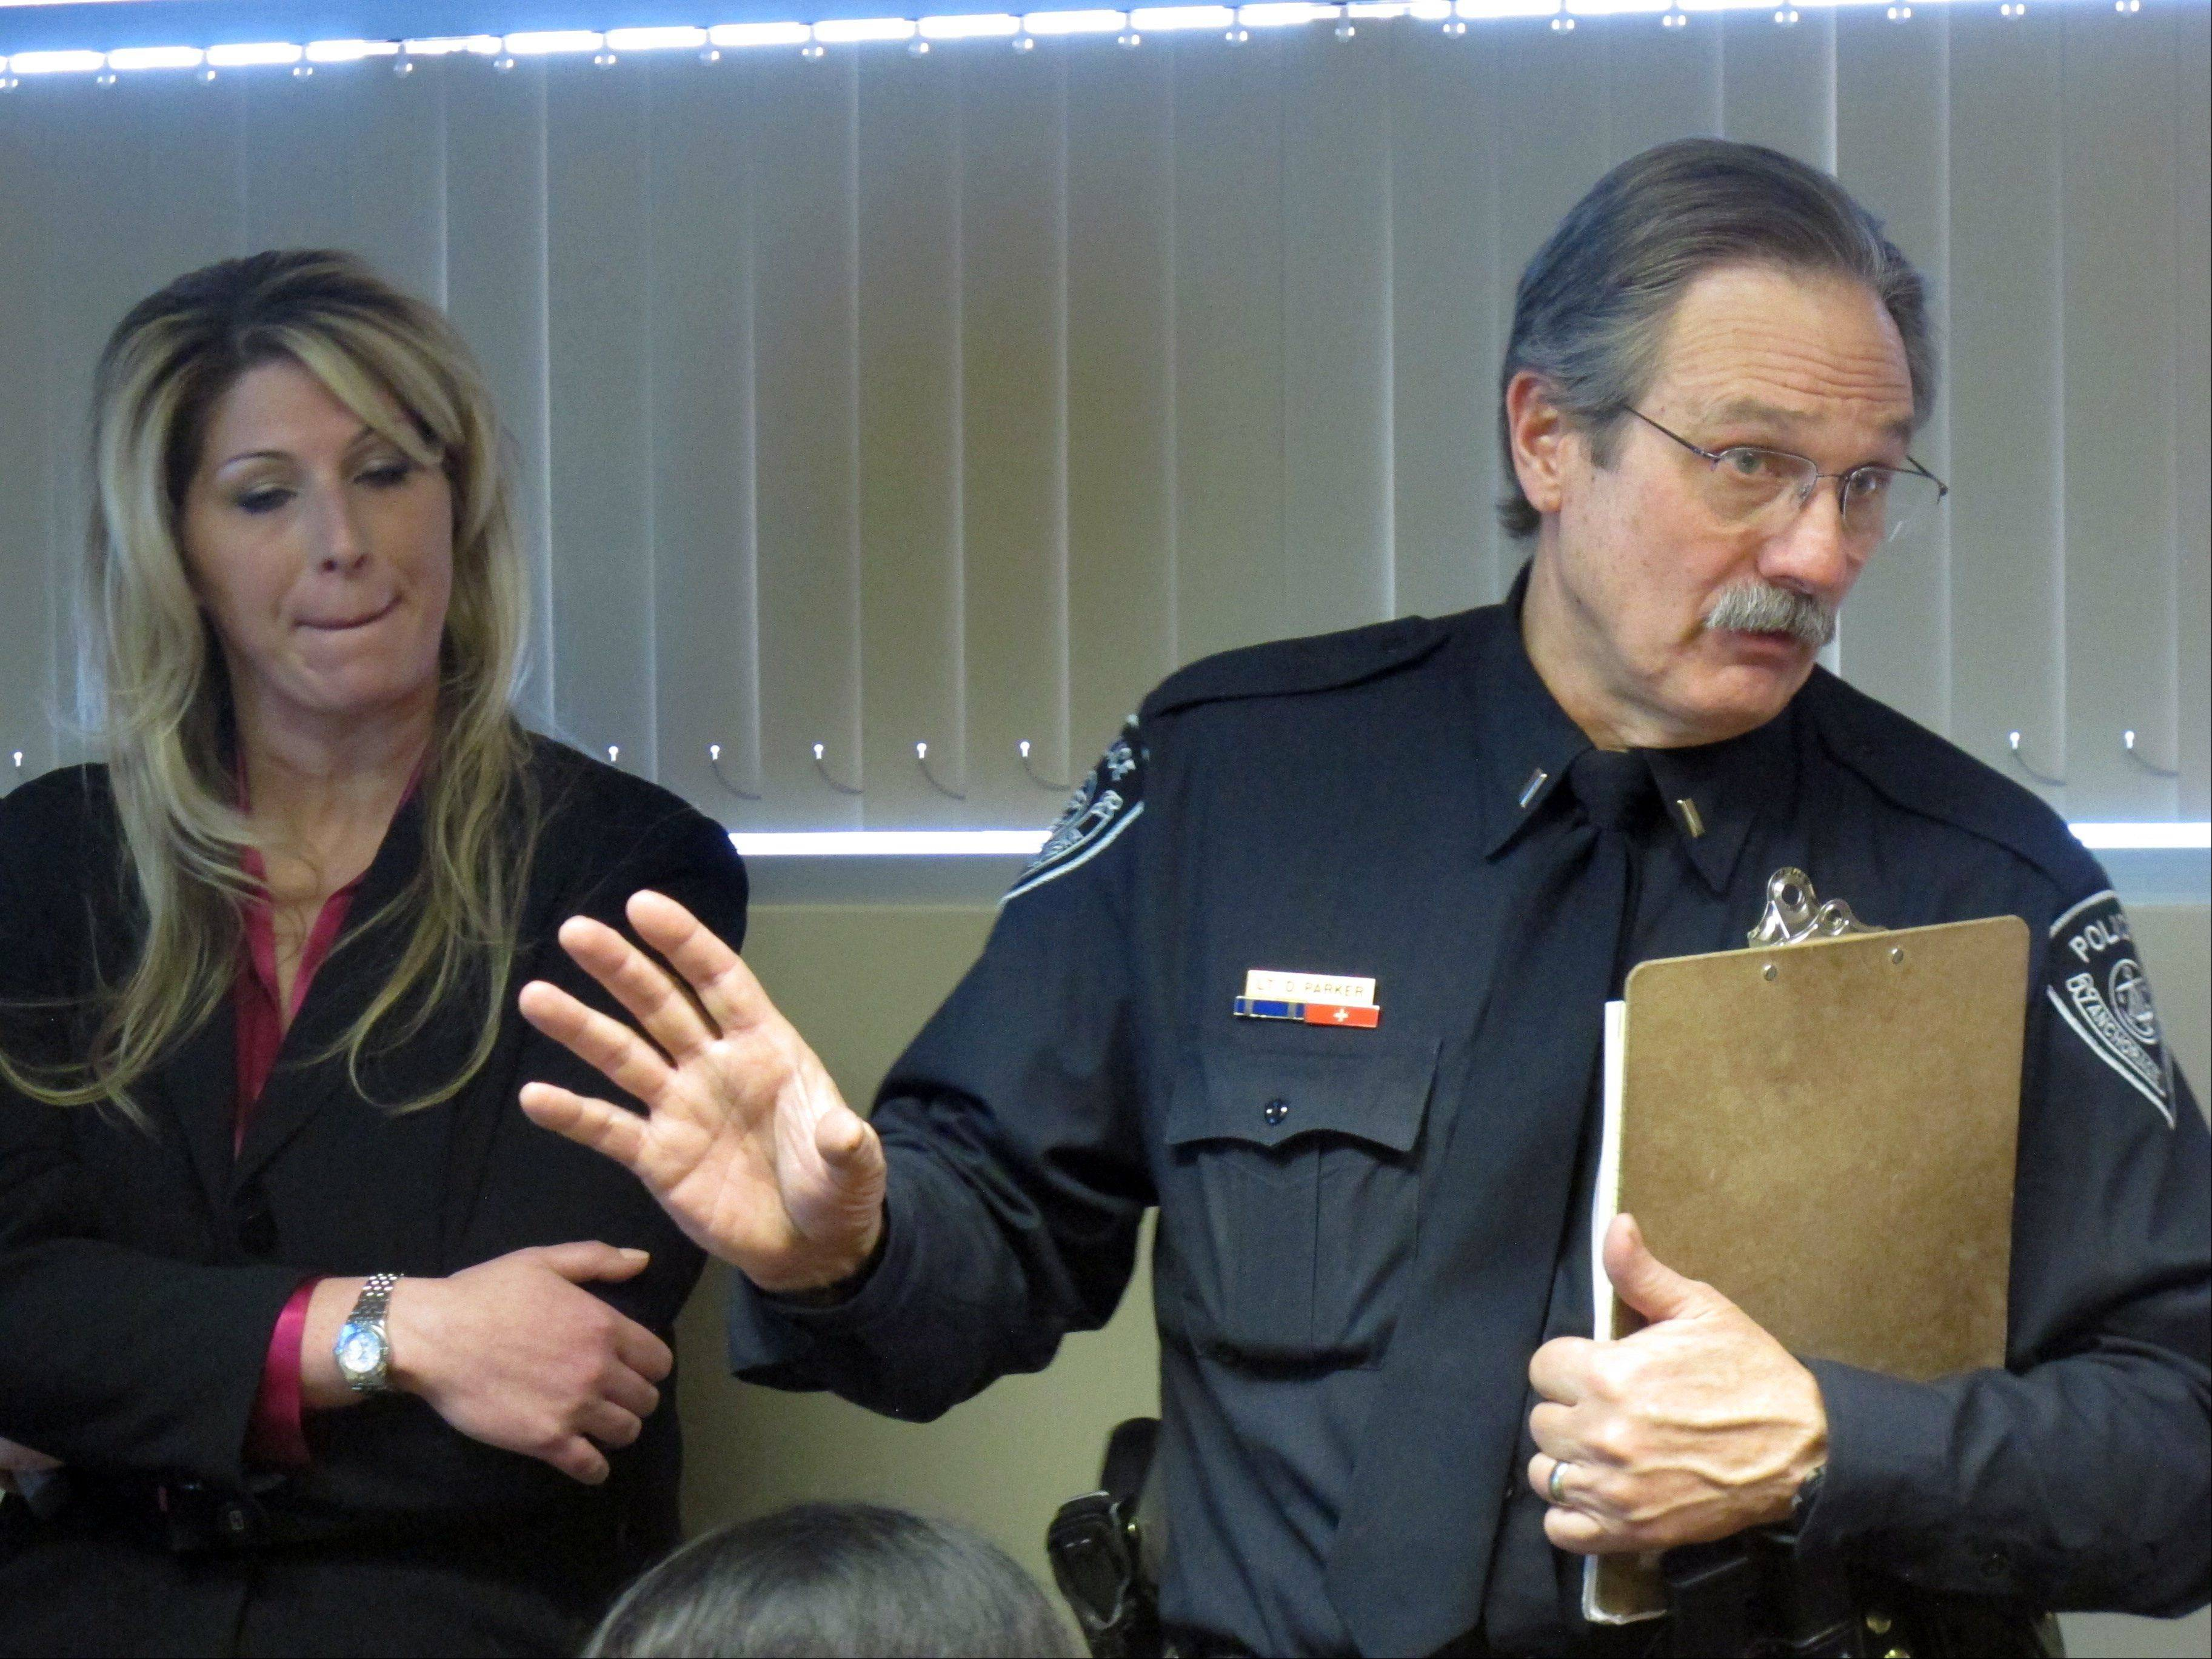 Anchorage Police Detective Monique Doll, left, and spokesman Lt. Dave Parker speak Tuesday during a news conference in Anchorage, Alaska. Authorities released more information of the Feb. 1, 2012, abduction of Samantha Koenig, 18, from a coffee stand in Anchorage.